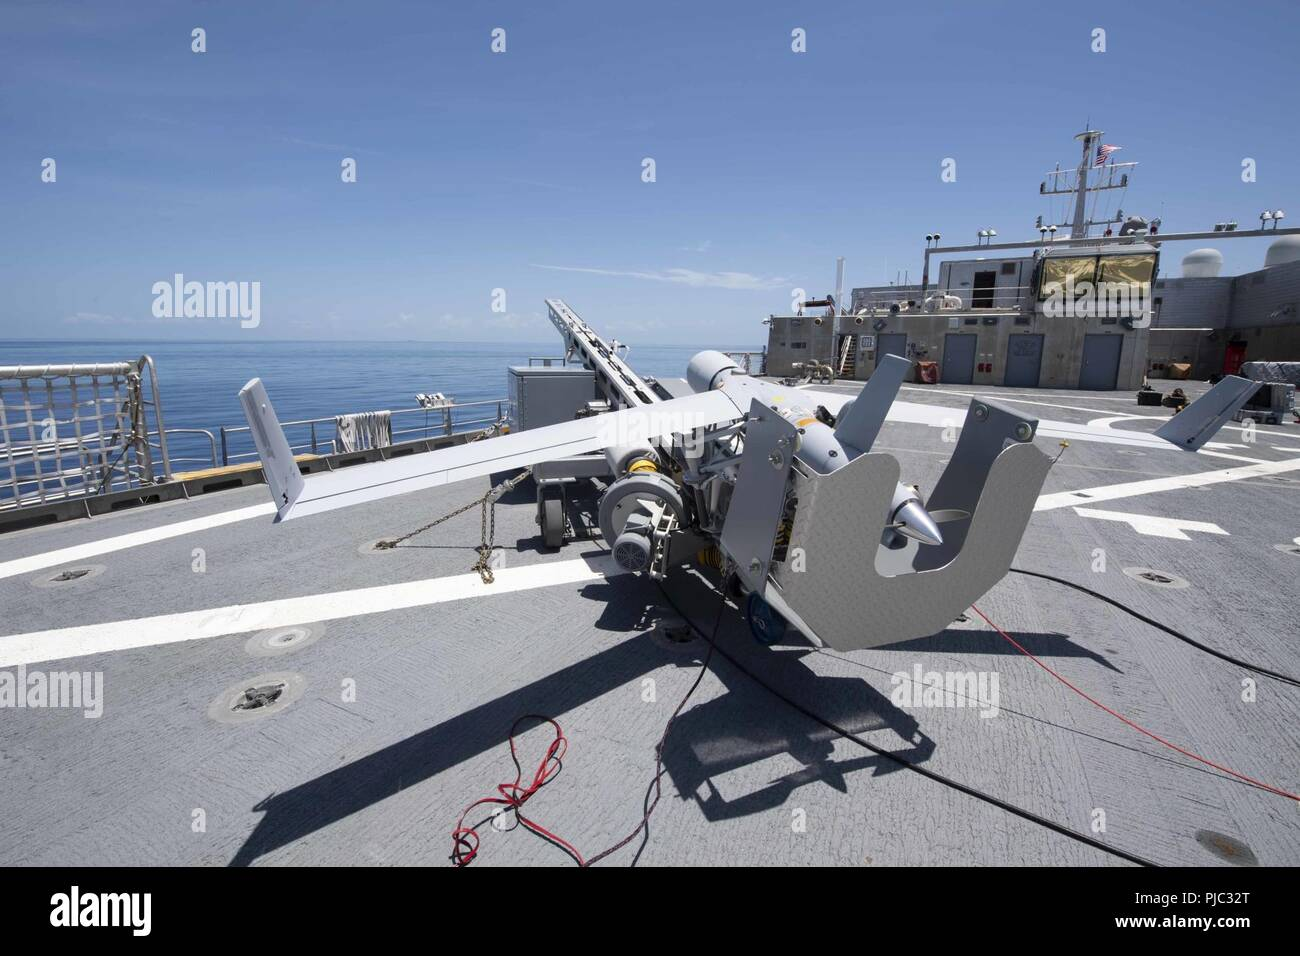 ATLANTIC OCEAN (July 19, 2018) The Scan Eagle unmanned